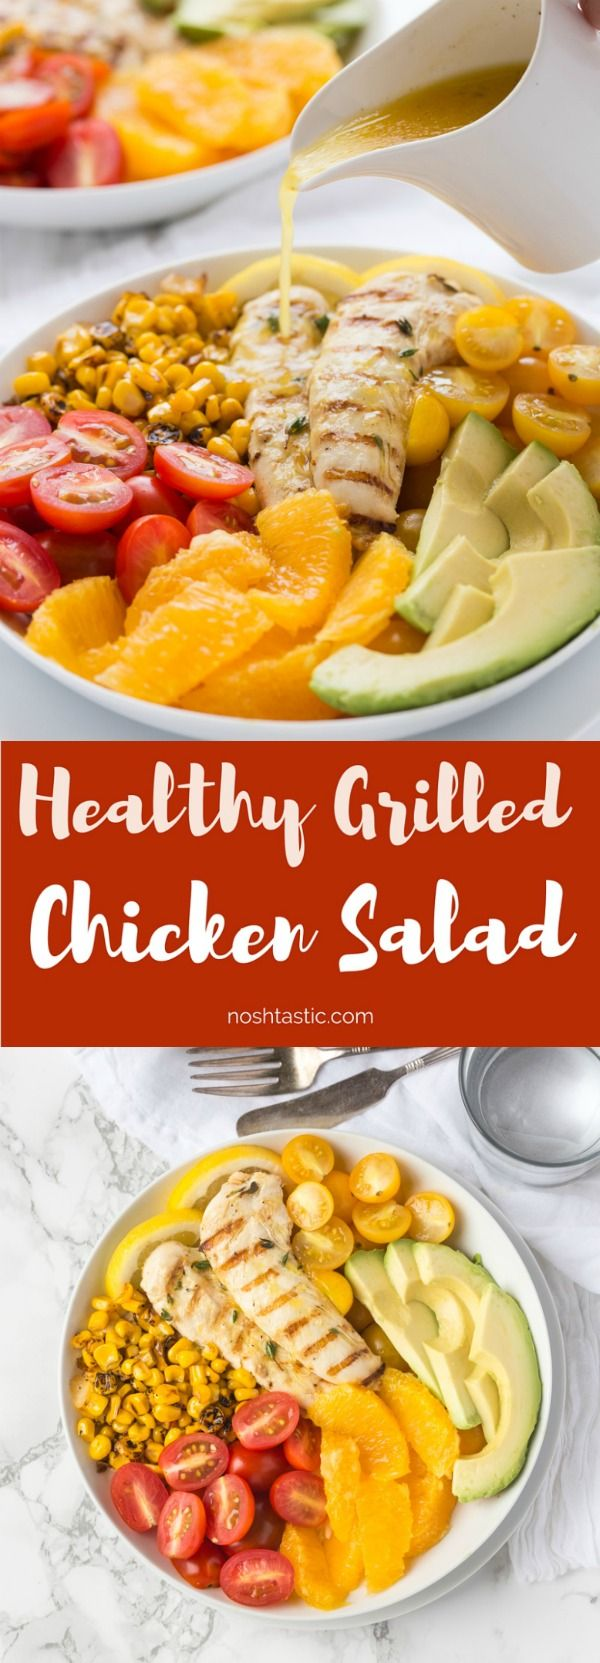 This gluten free Chicken Salad With honey Orange Vinaigrette is a winning combination of fresh flavors and a citrus dressing you'll love! | Paleo & whole30 options |